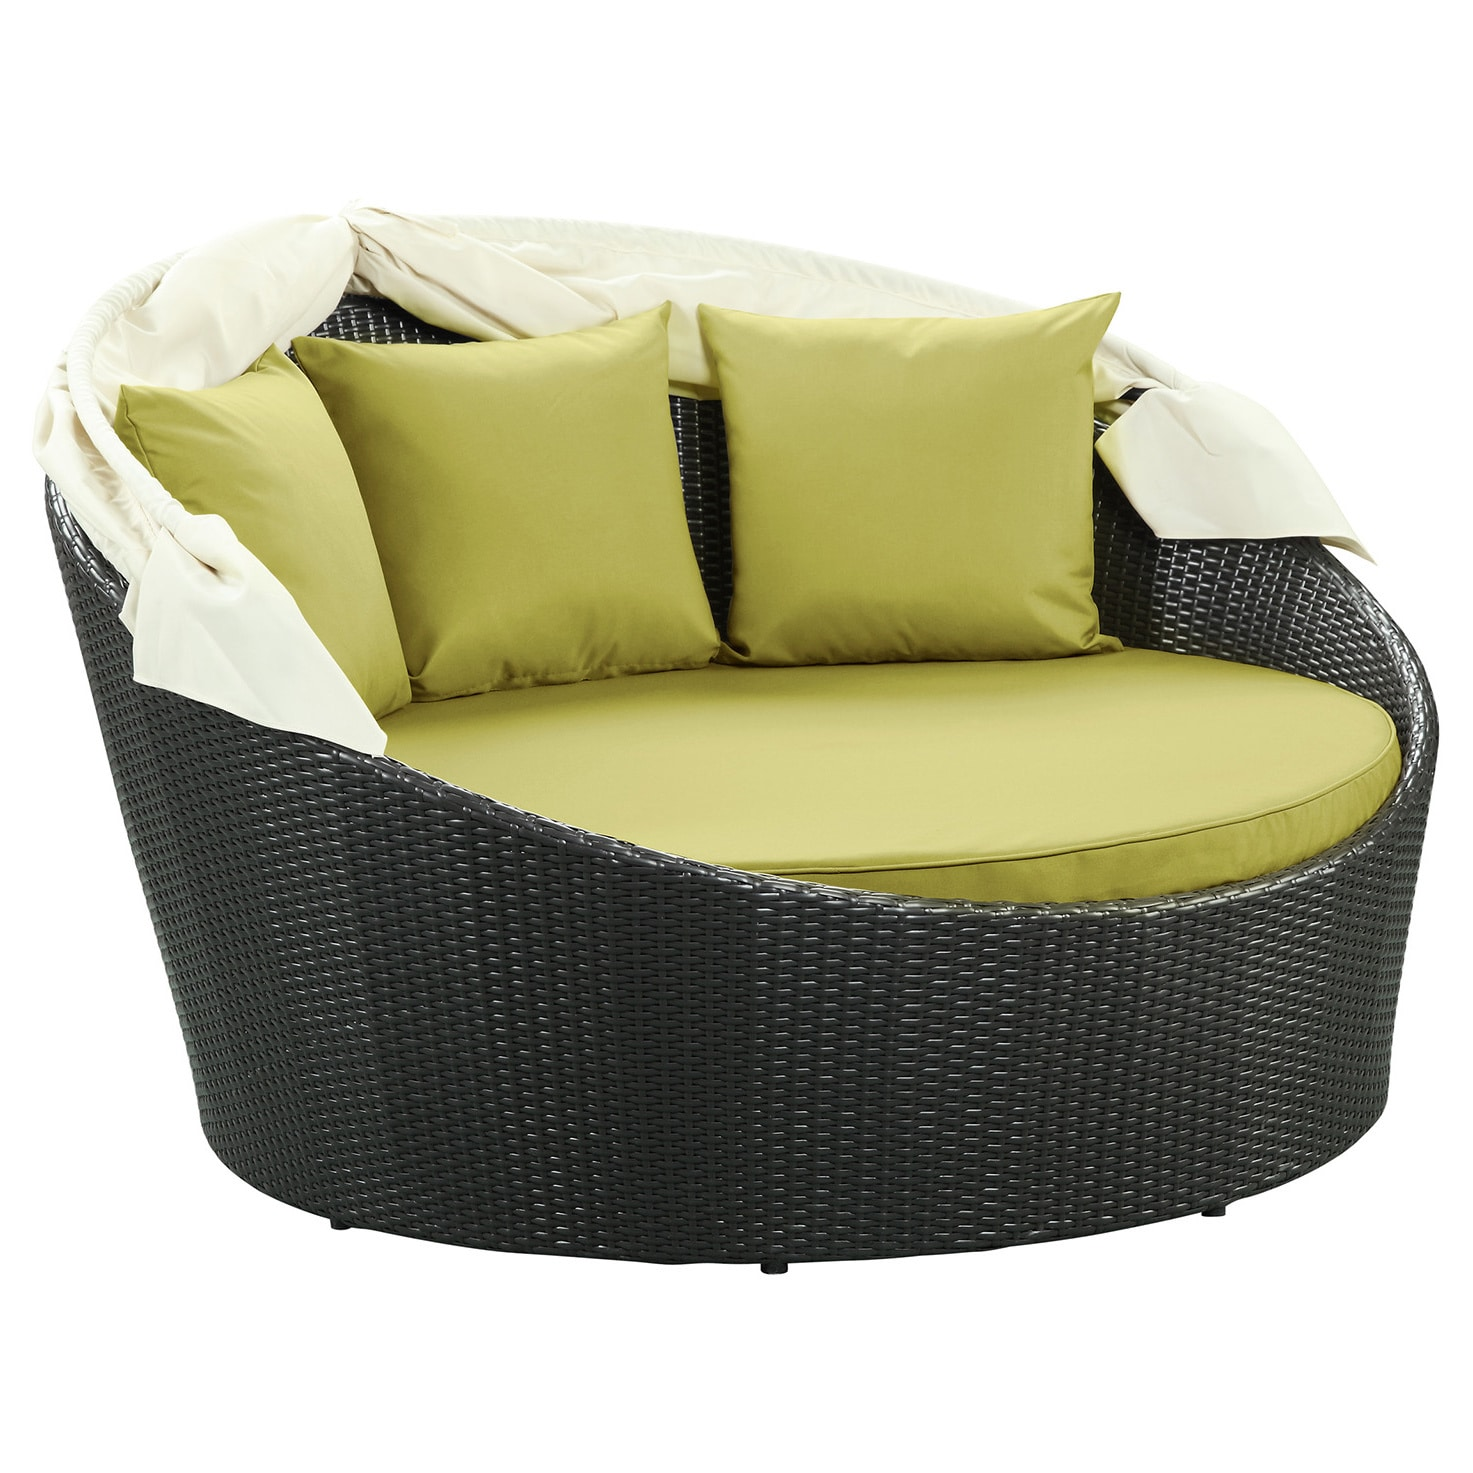 Shop Siesta Outdoor Rattan Canopy Bed - On Sale - Free Shipping Today -  Overstock.com - 6671012 - Shop Siesta Outdoor Rattan Canopy Bed - On Sale - Free Shipping